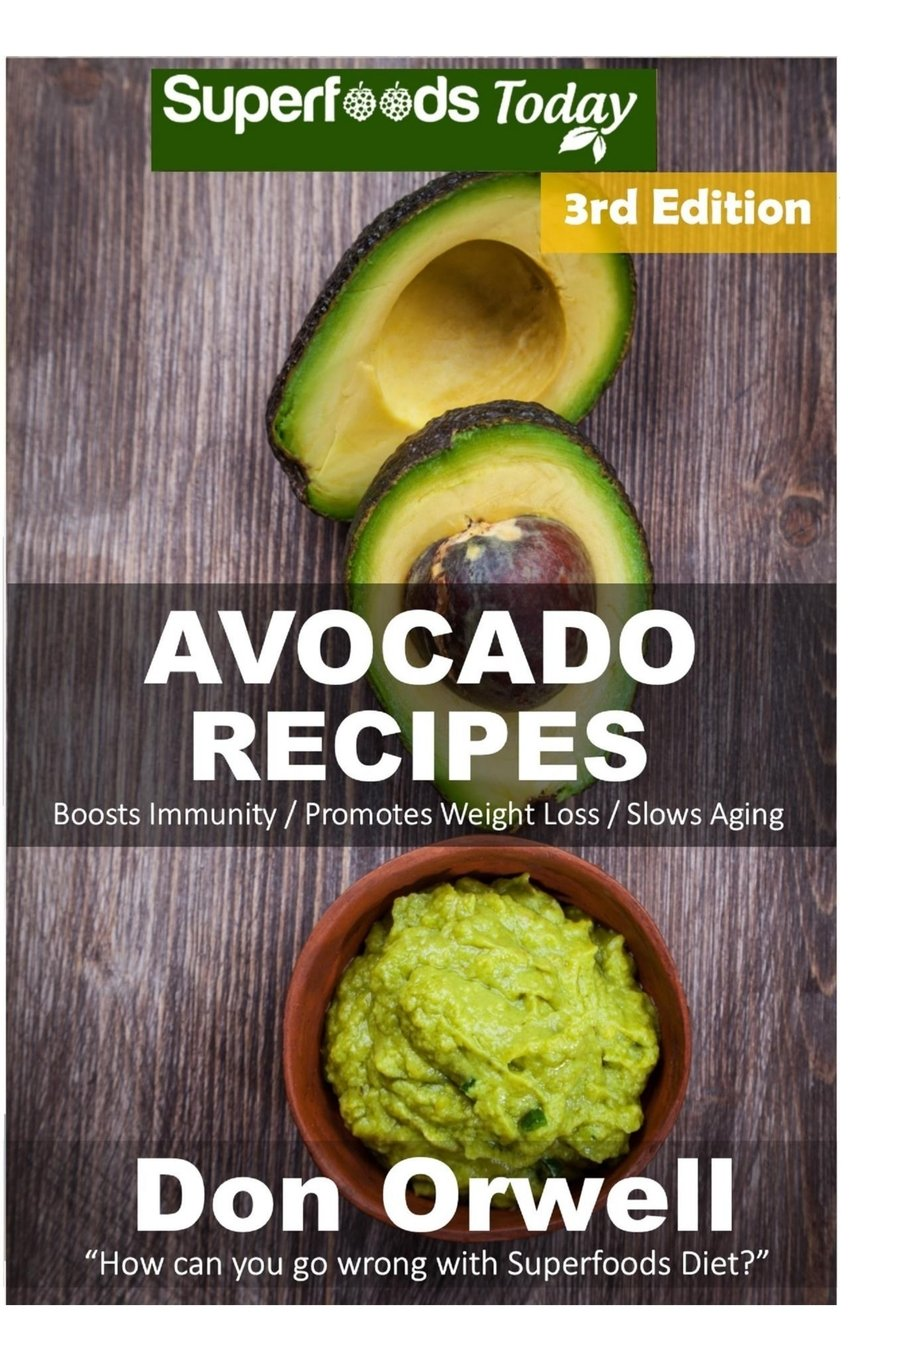 Avocado Recipes: Over 50 Quick & Easy Gluten Free Low Cholesterol Whole Foods Recipes full of Antioxidants & Phytochemicals (Volume 3) PDF